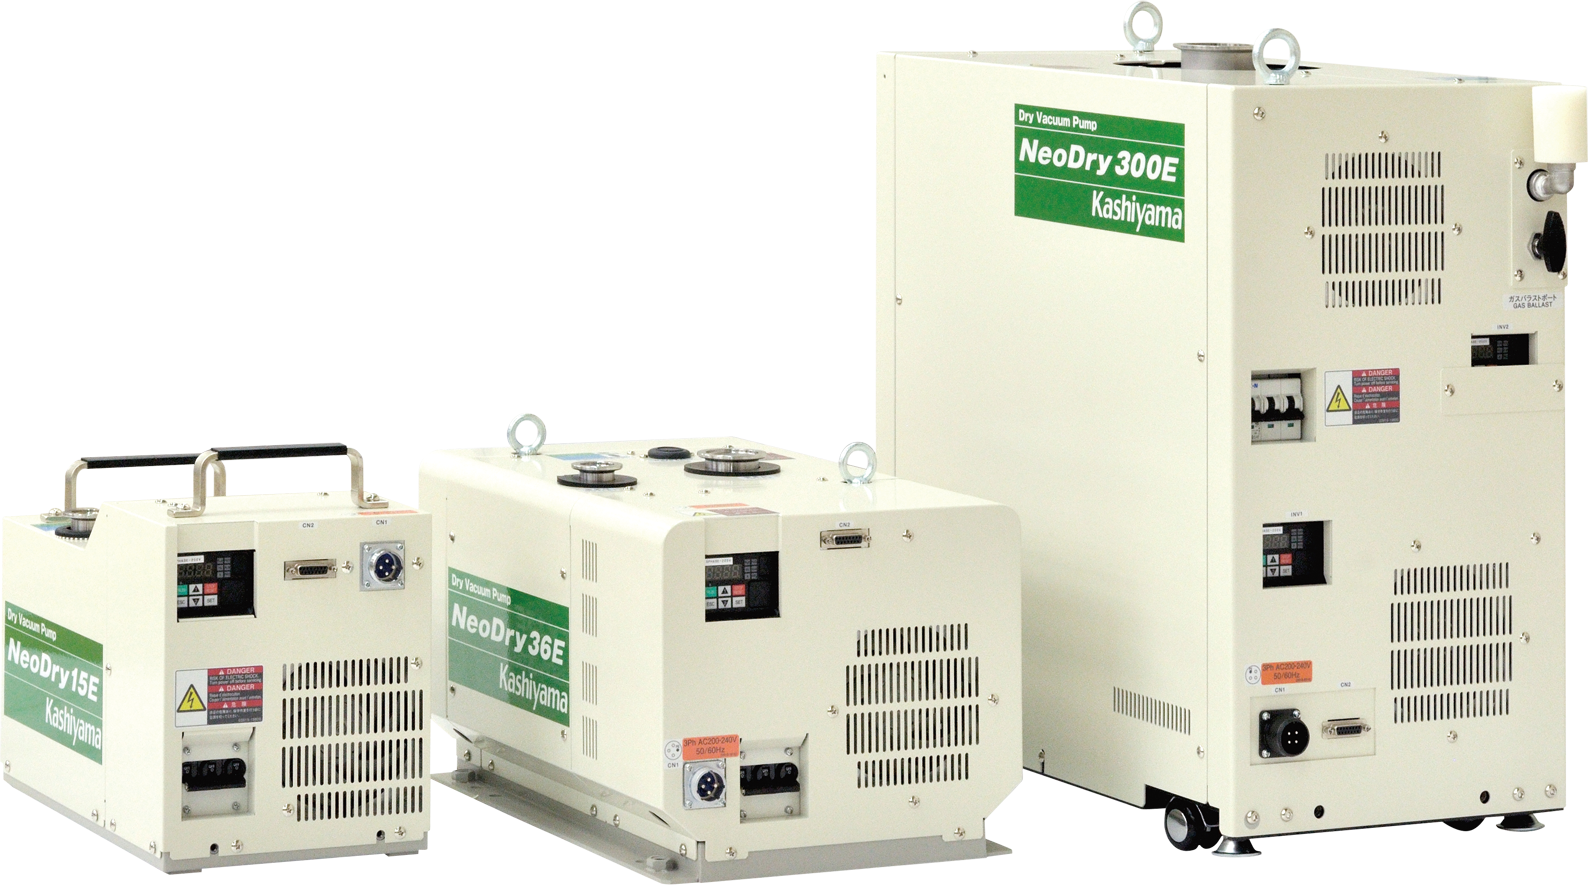 Neodry Series Kashiyama Industries Ltd